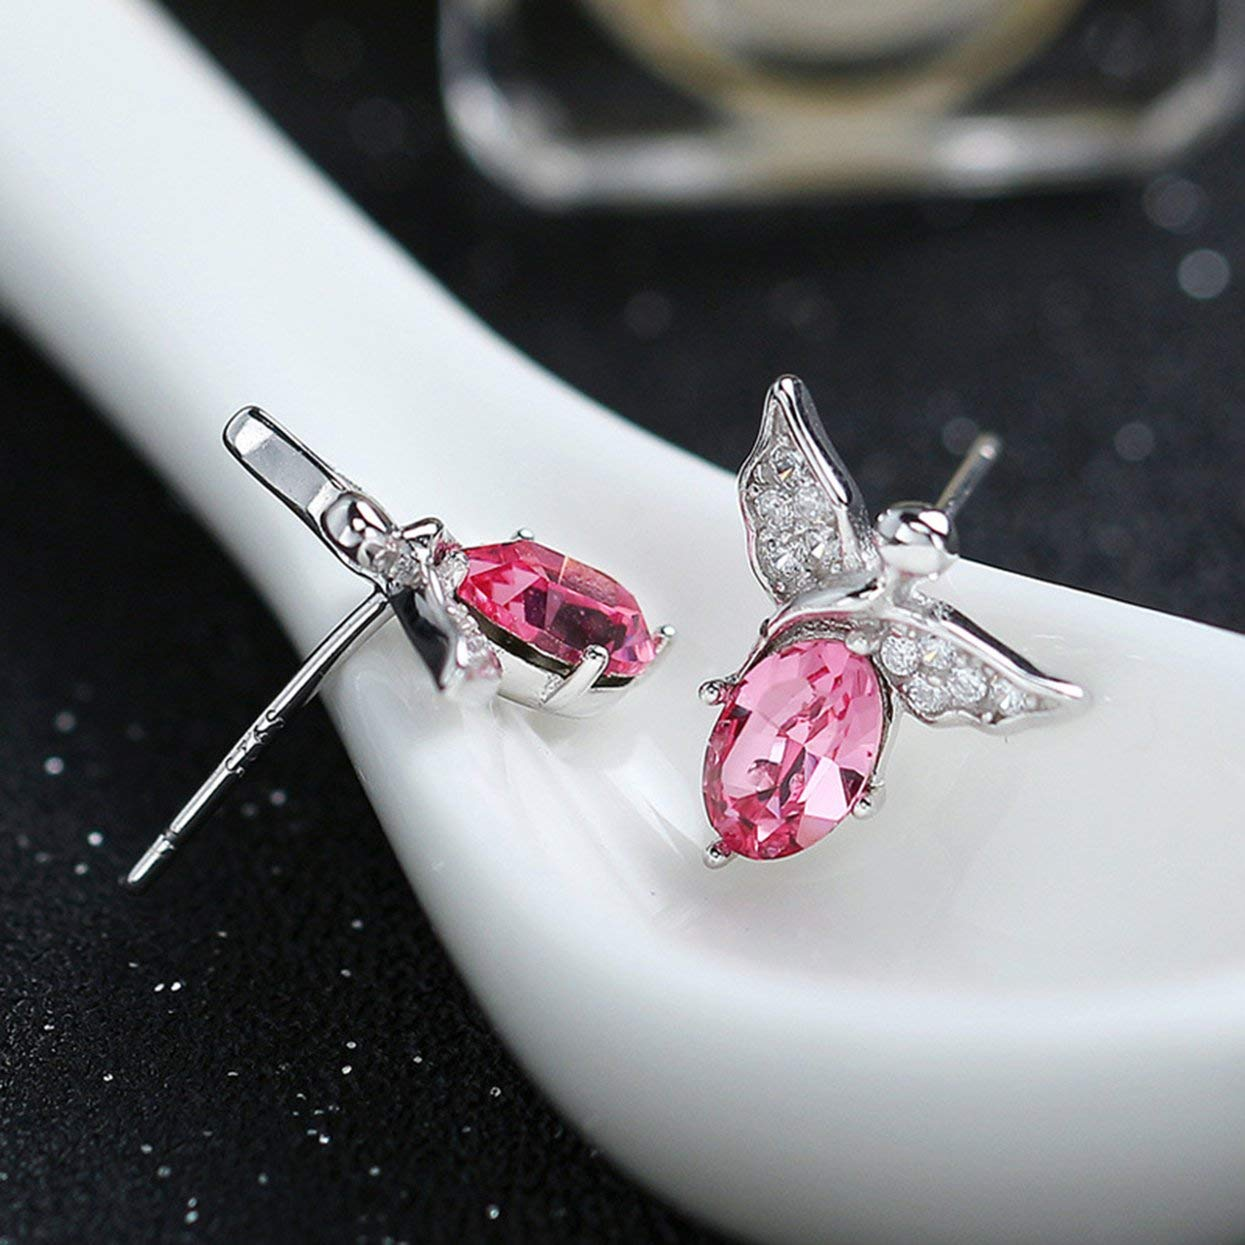 anyilon Crystal Angel Earrings S925 Sterling Silver Stud Earrings with Freshwater Culltured Pearl Crystal for Women Girls